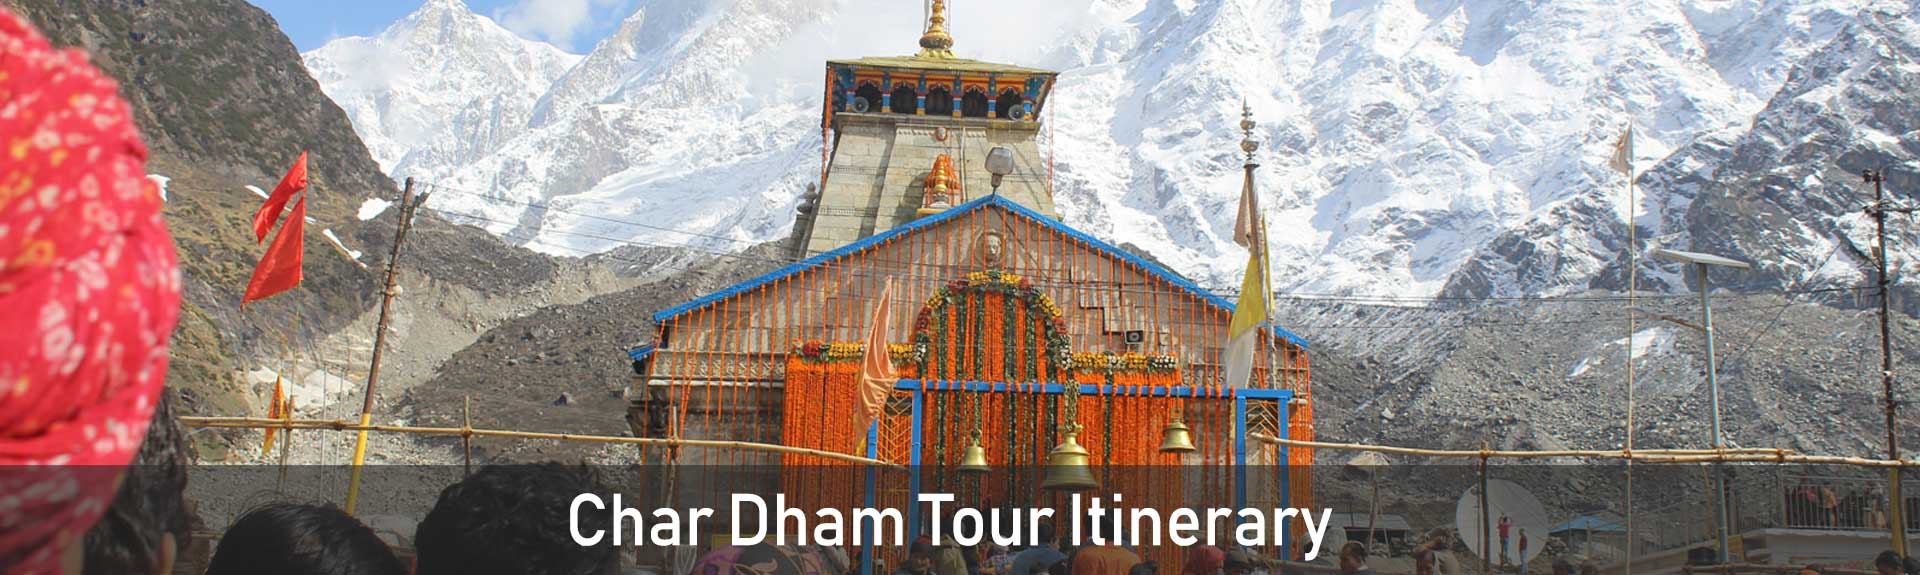 Char Dham Tour Itinerary